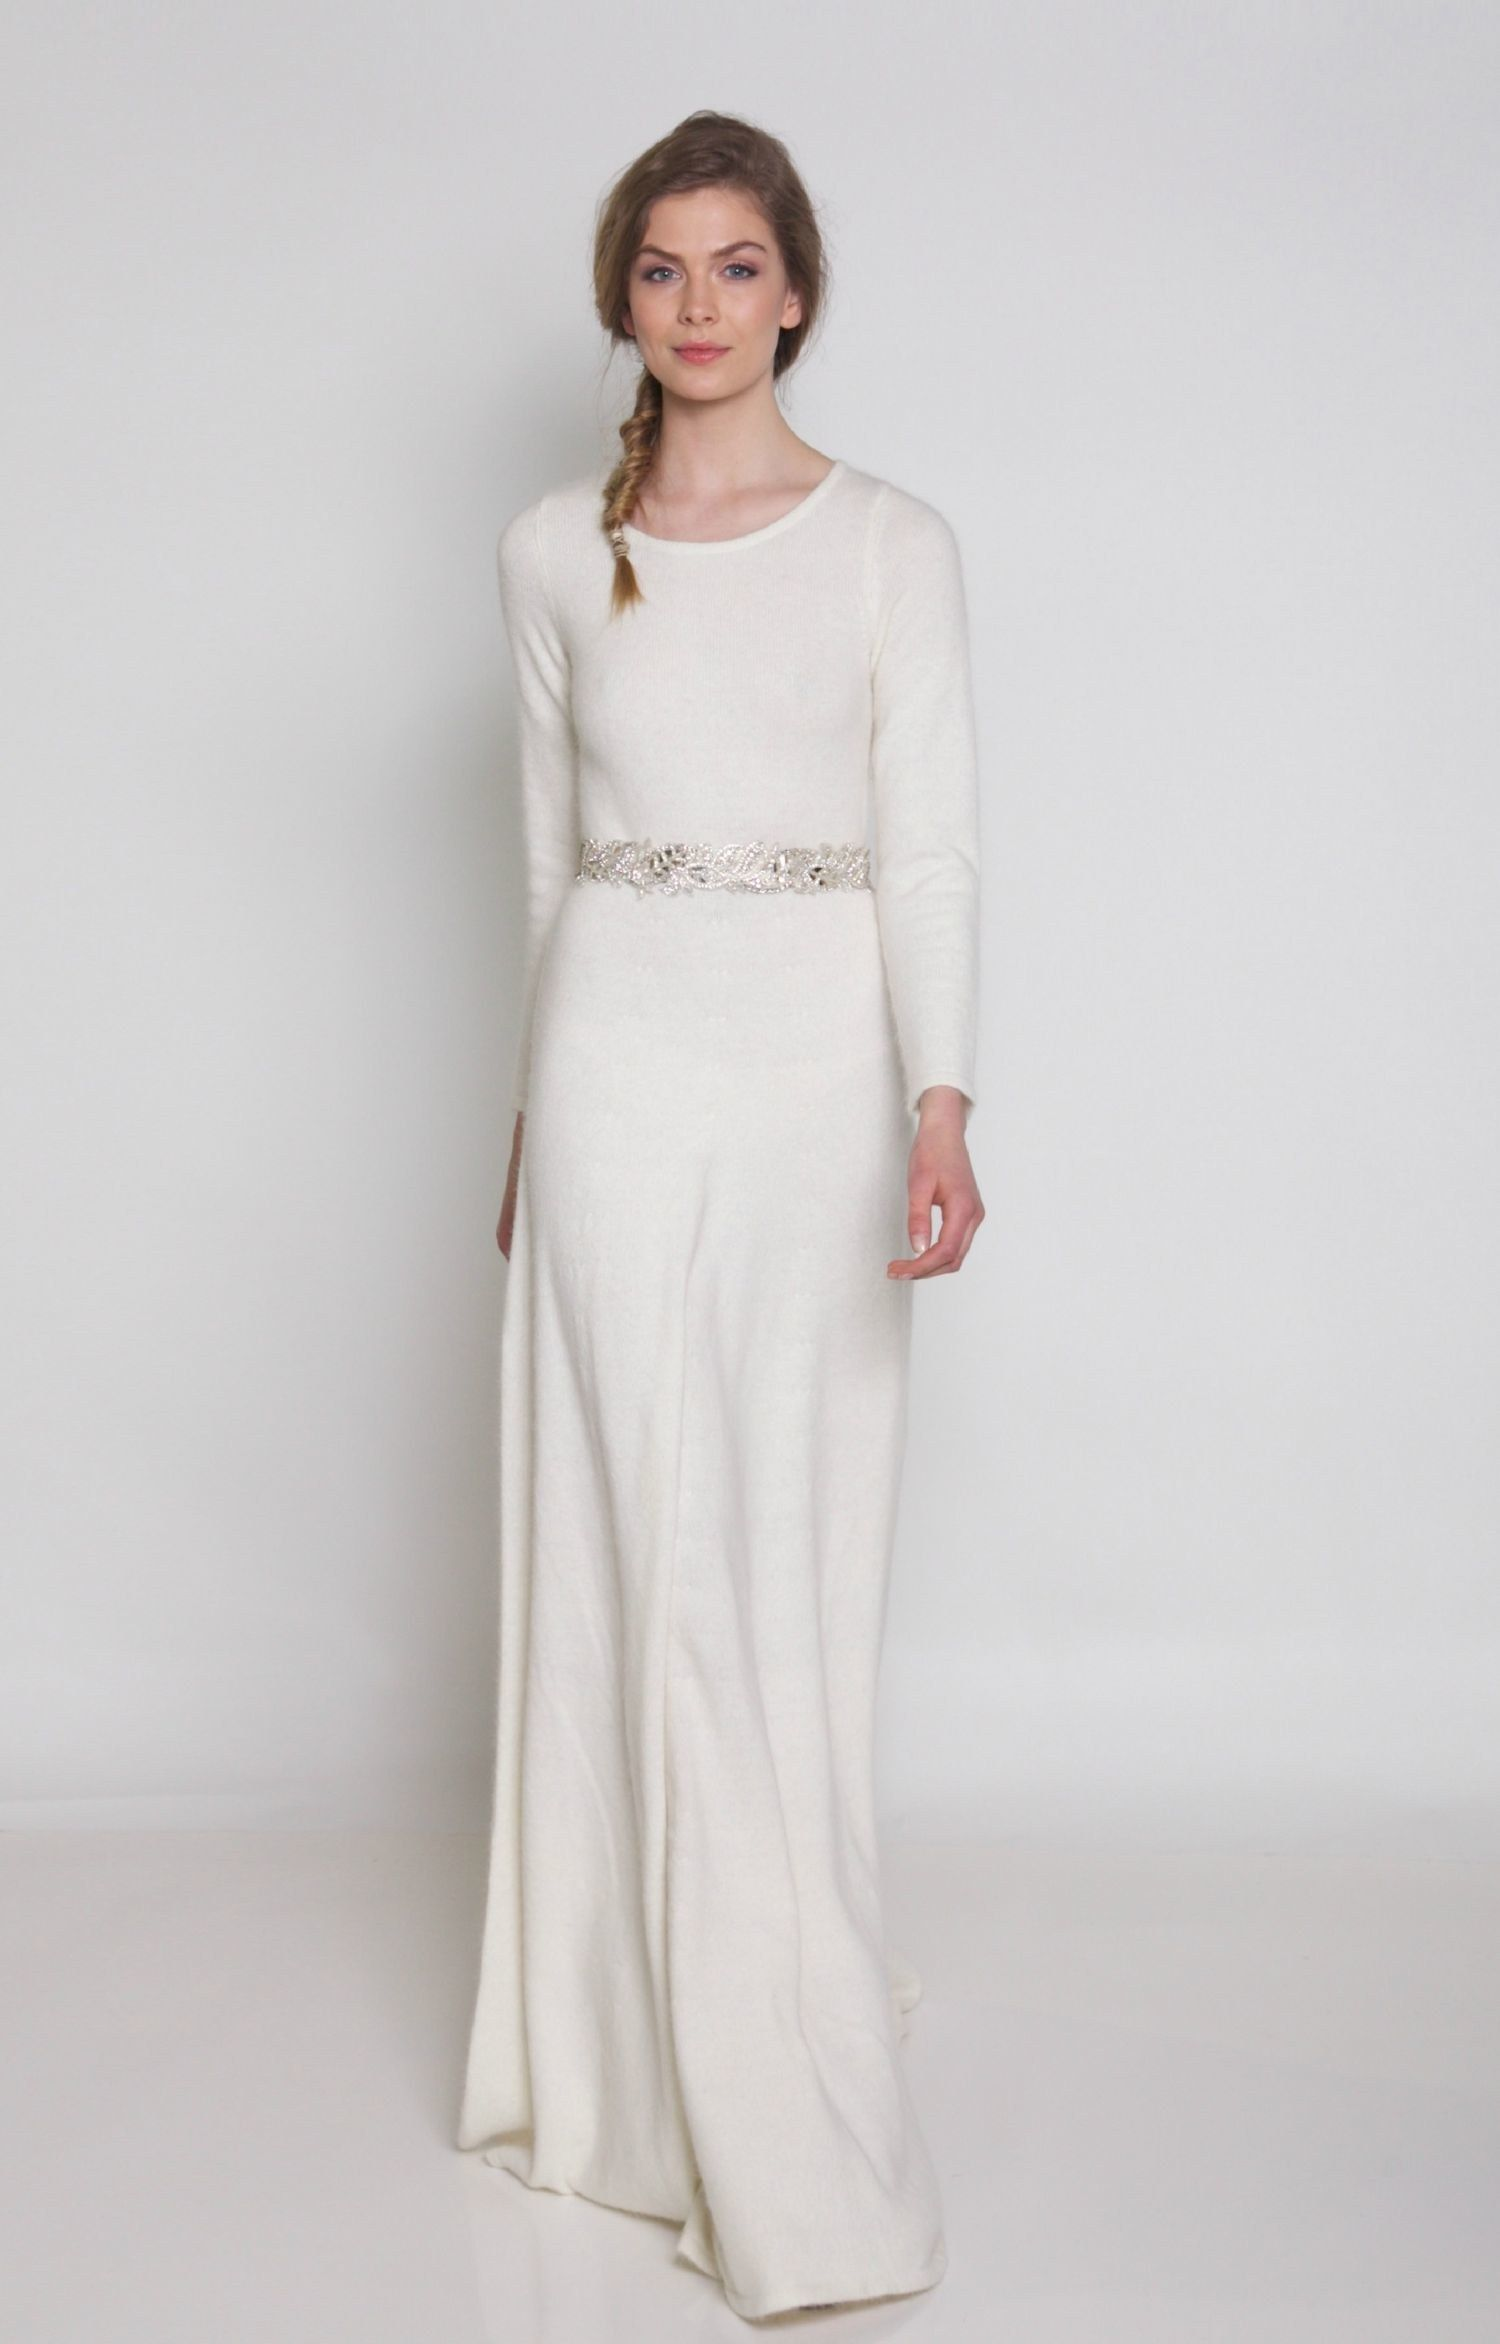 Best New Wedding Dresses (With images) Wedding dress